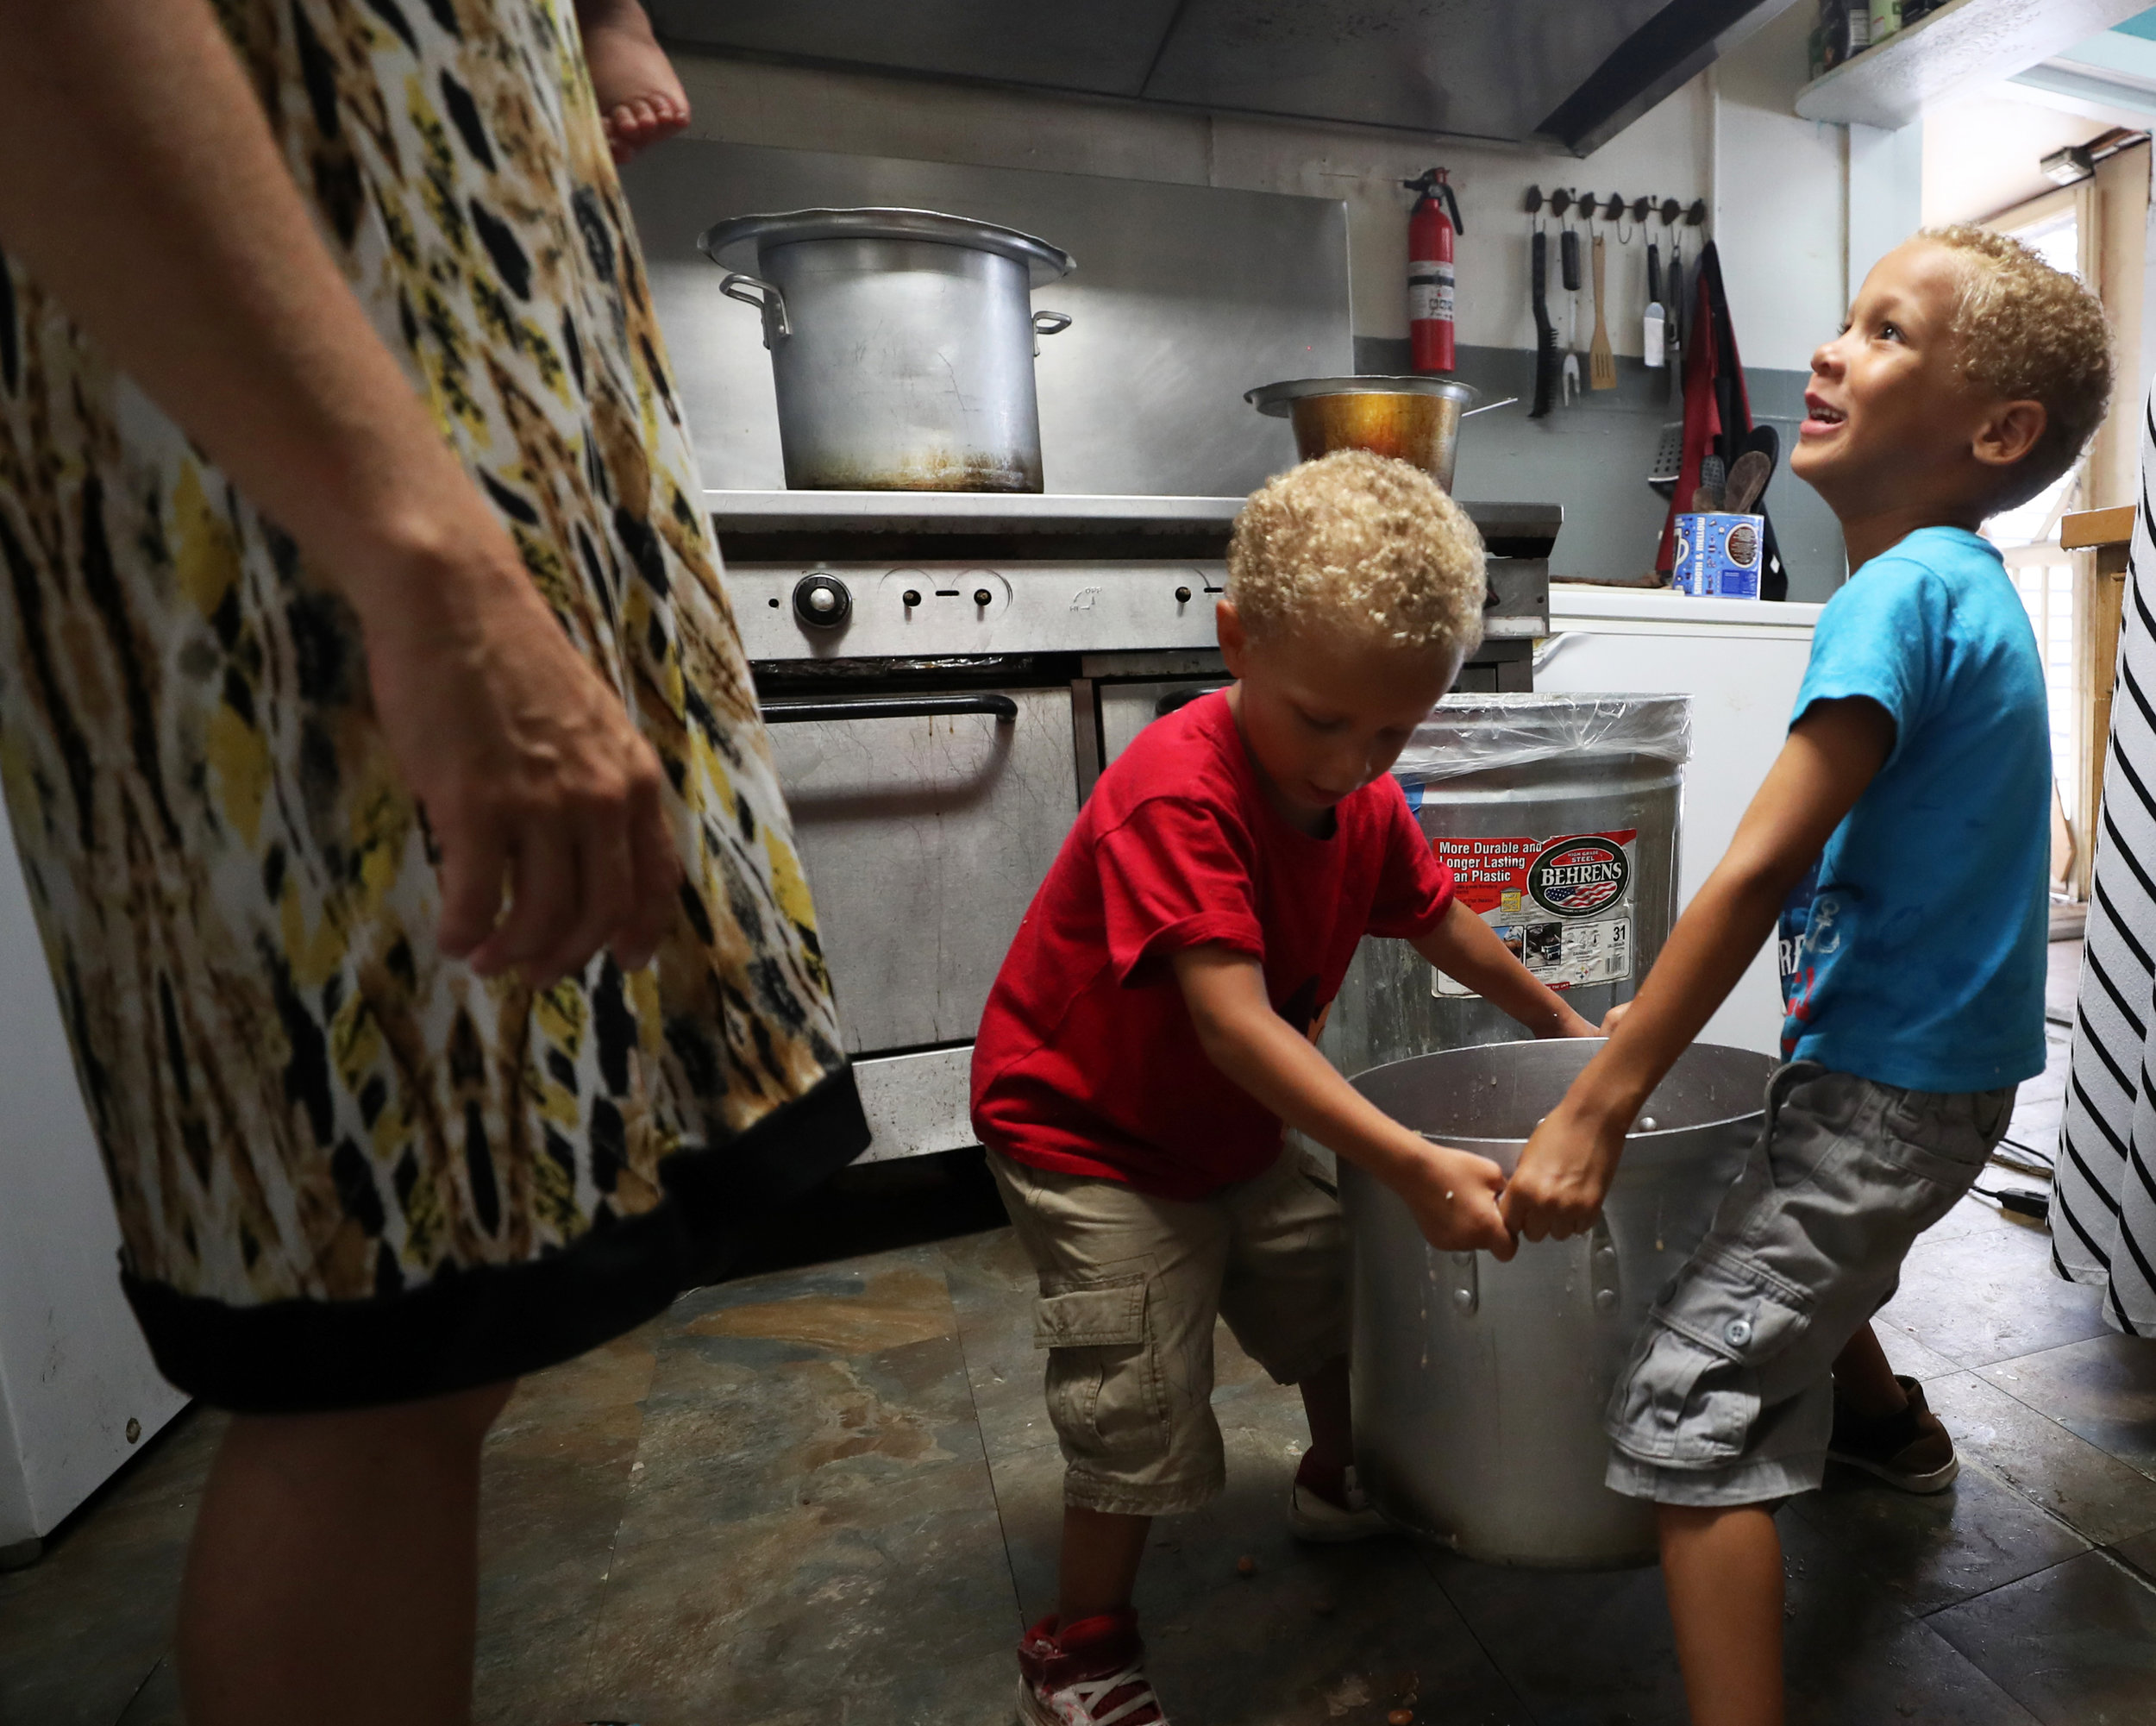 Kaleb White looks up at Karla White while lifting a pot of beans with his brother, Kamron at the Streetscape Café on Thursday, May 24, 2018. The children enjoy helping Karla prepare breakfast and lunch at the café.